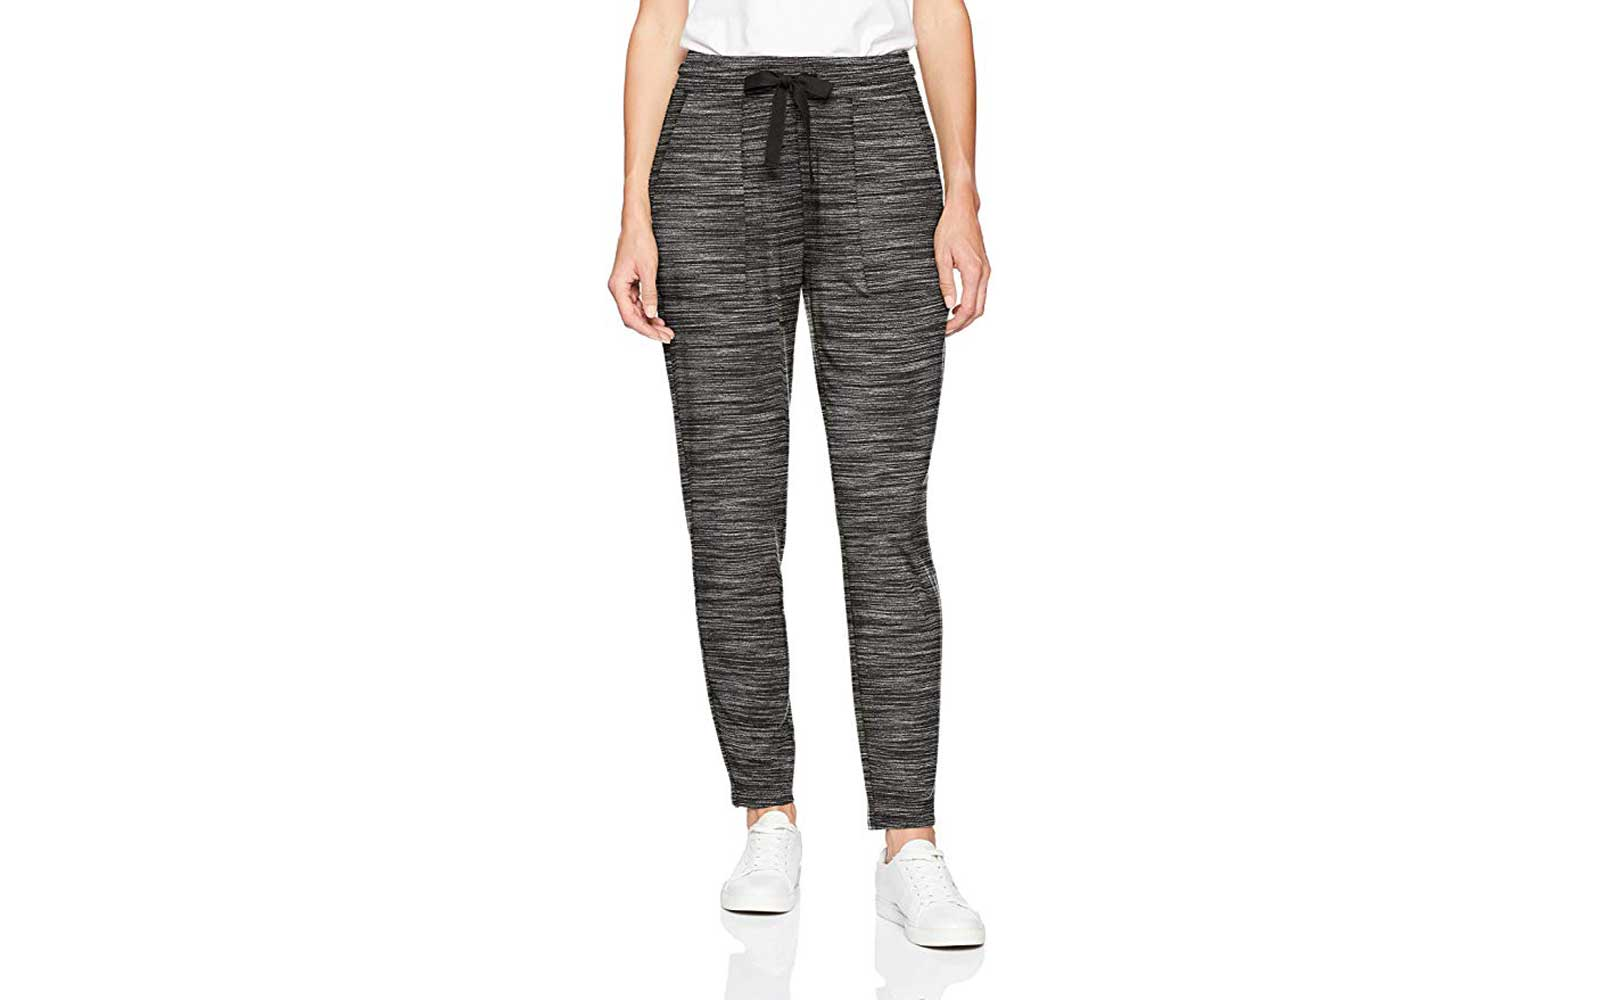 Grey and Black Women's Joggers